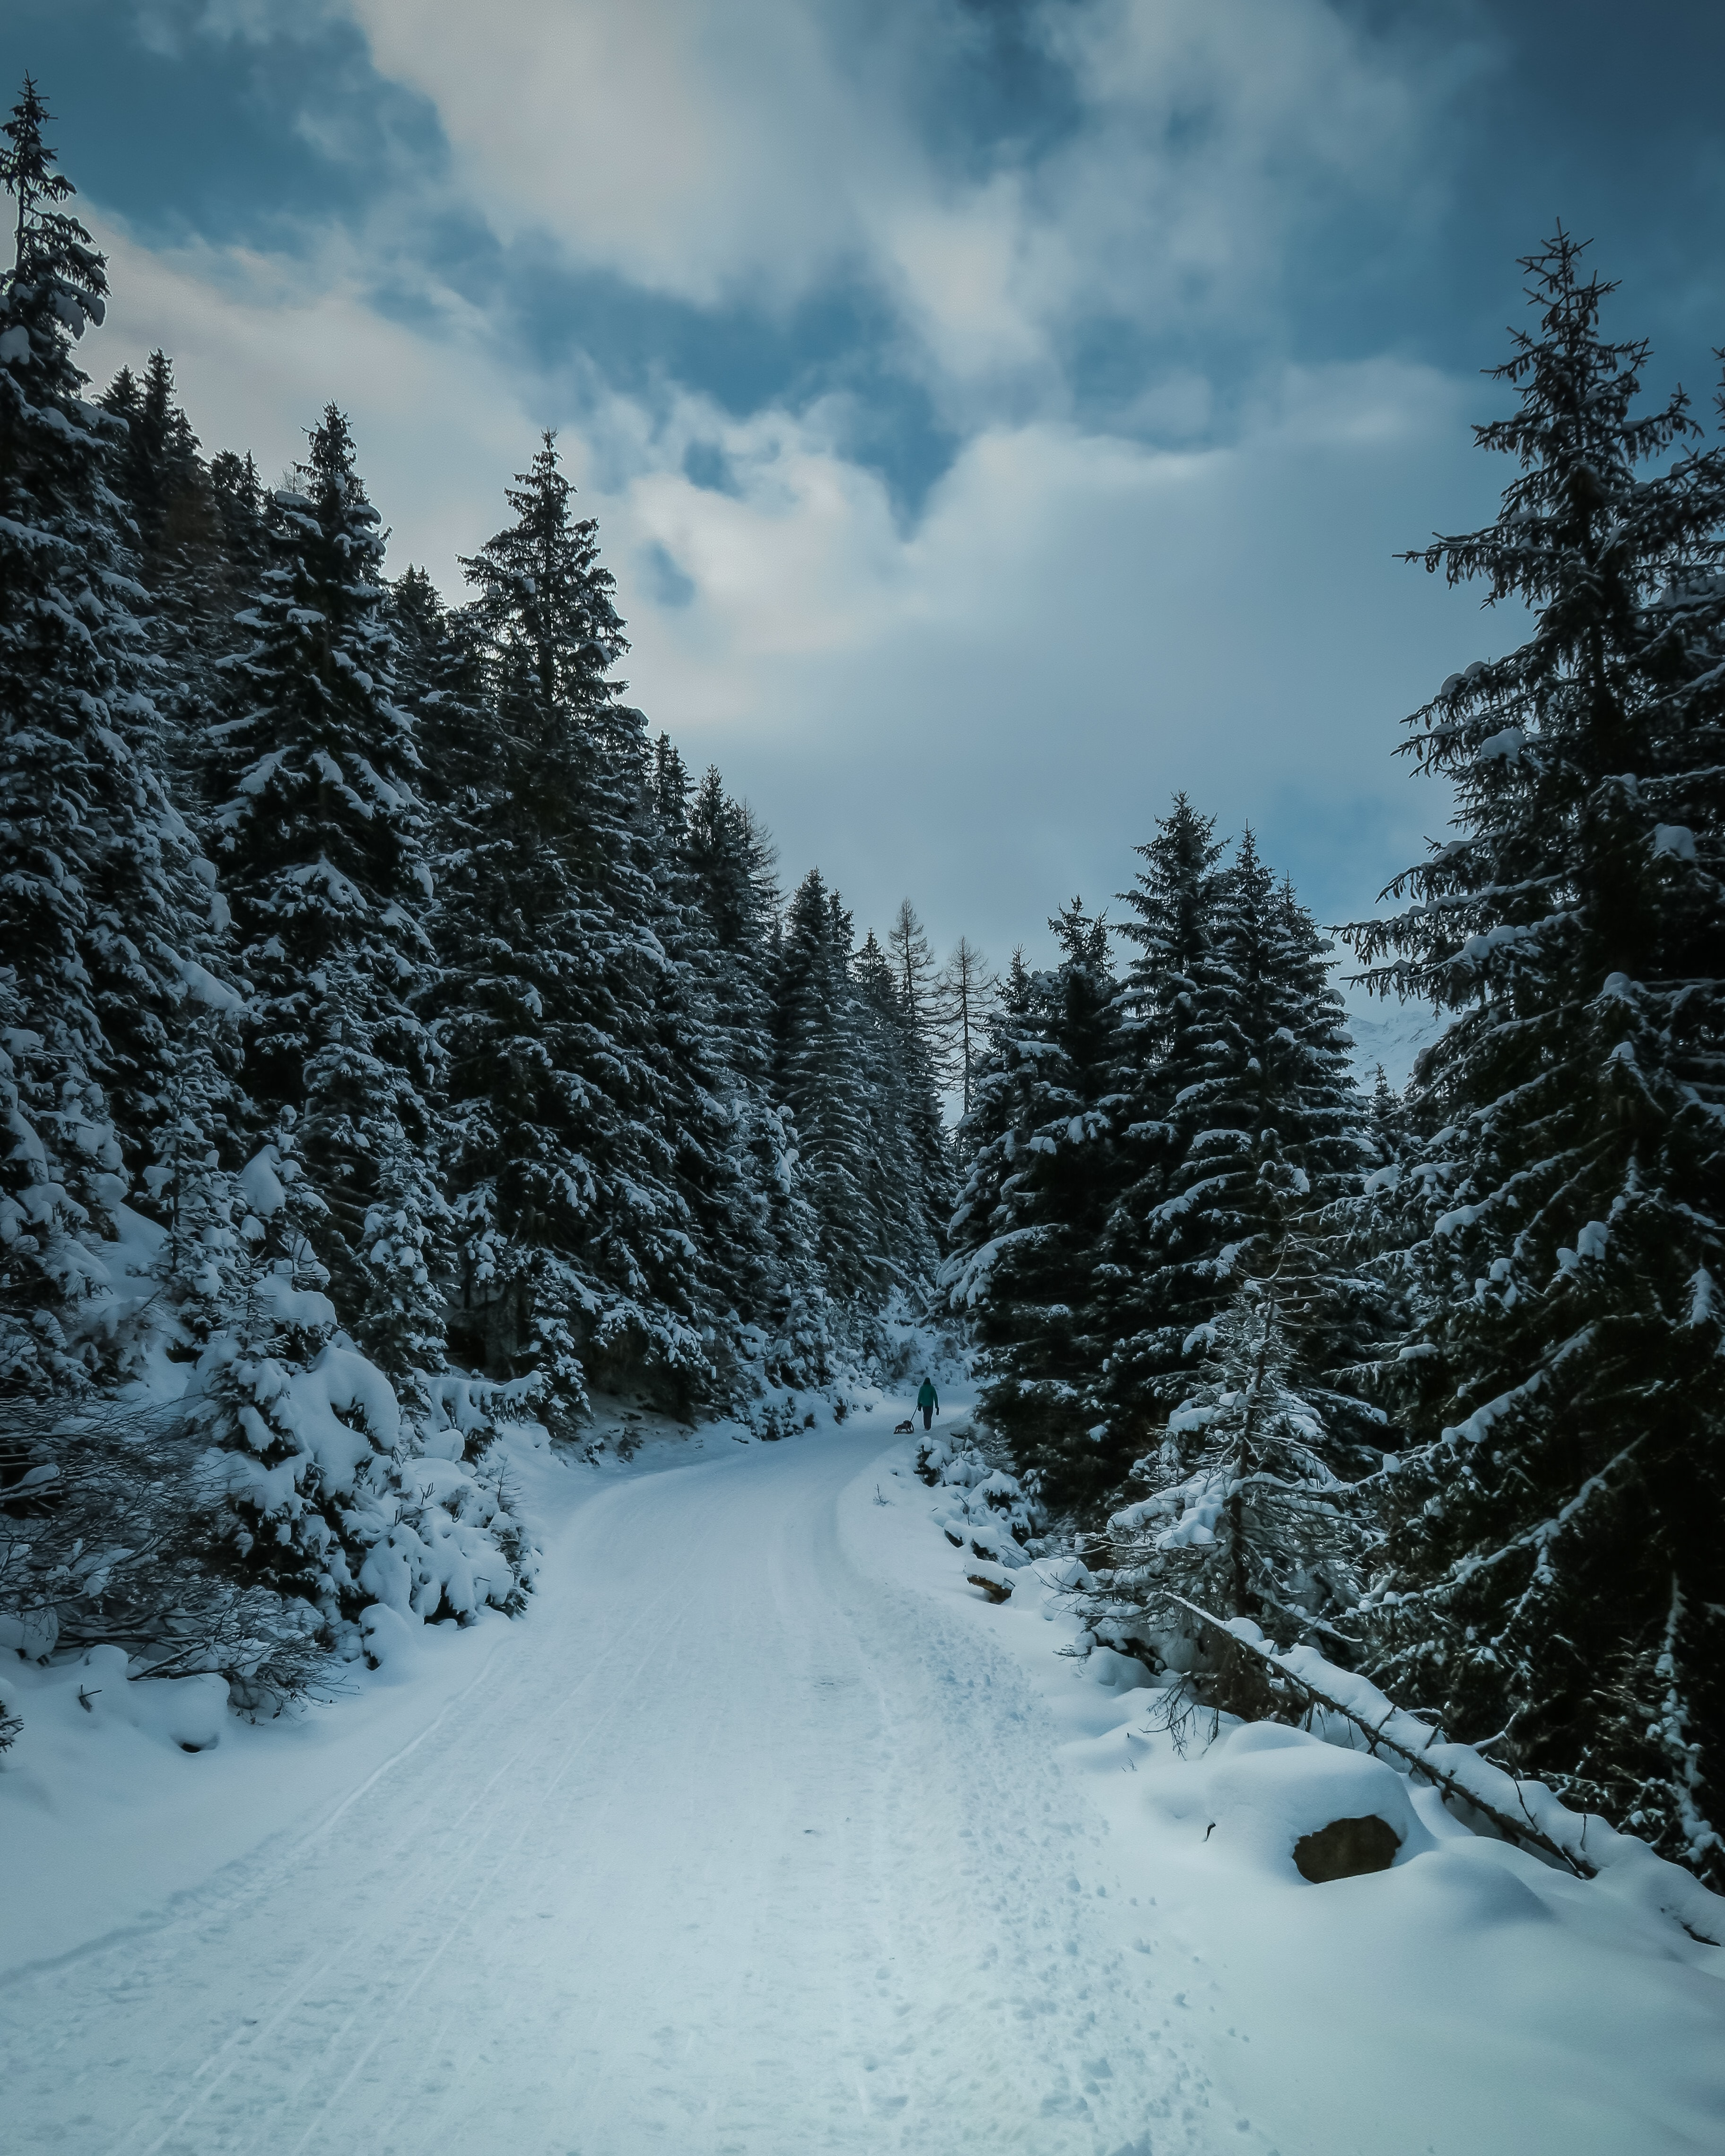 A distant shot of a person walking on a snowy trail through a forest